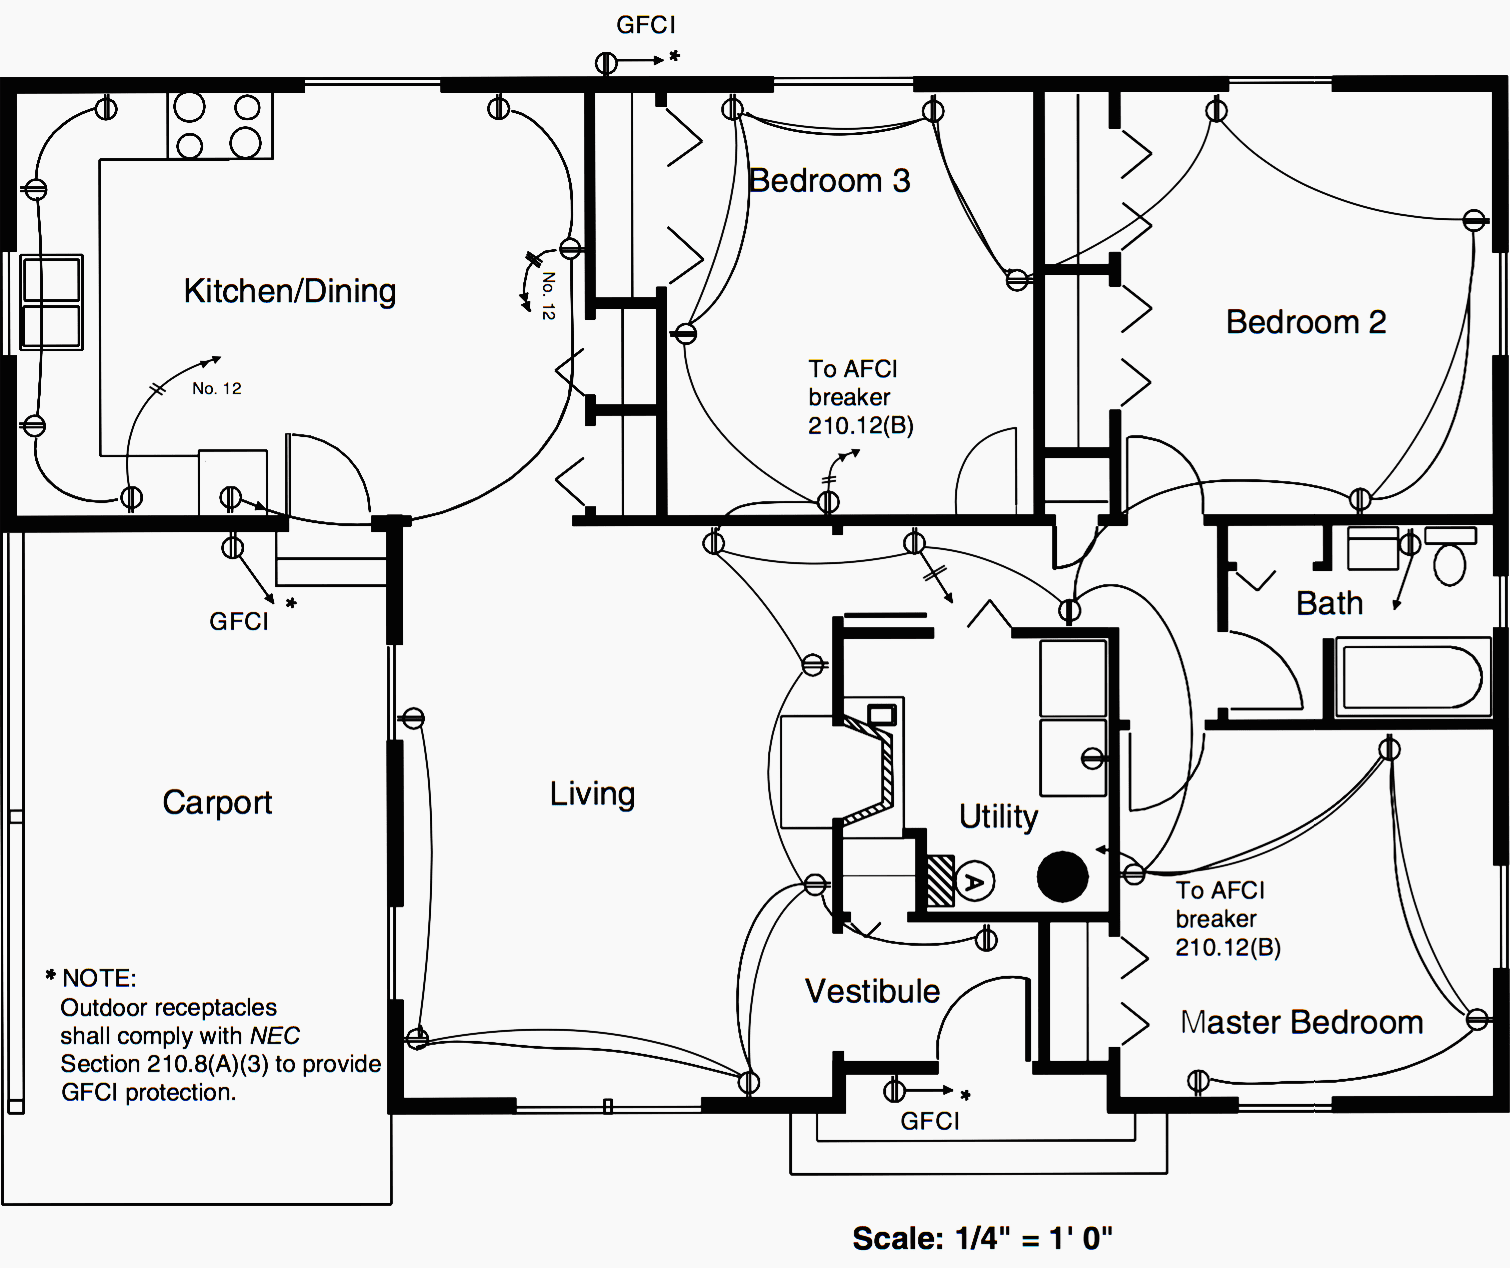 Reading electrical drawings basic home wiring diagrams at wws5 ww w freeautoresponder